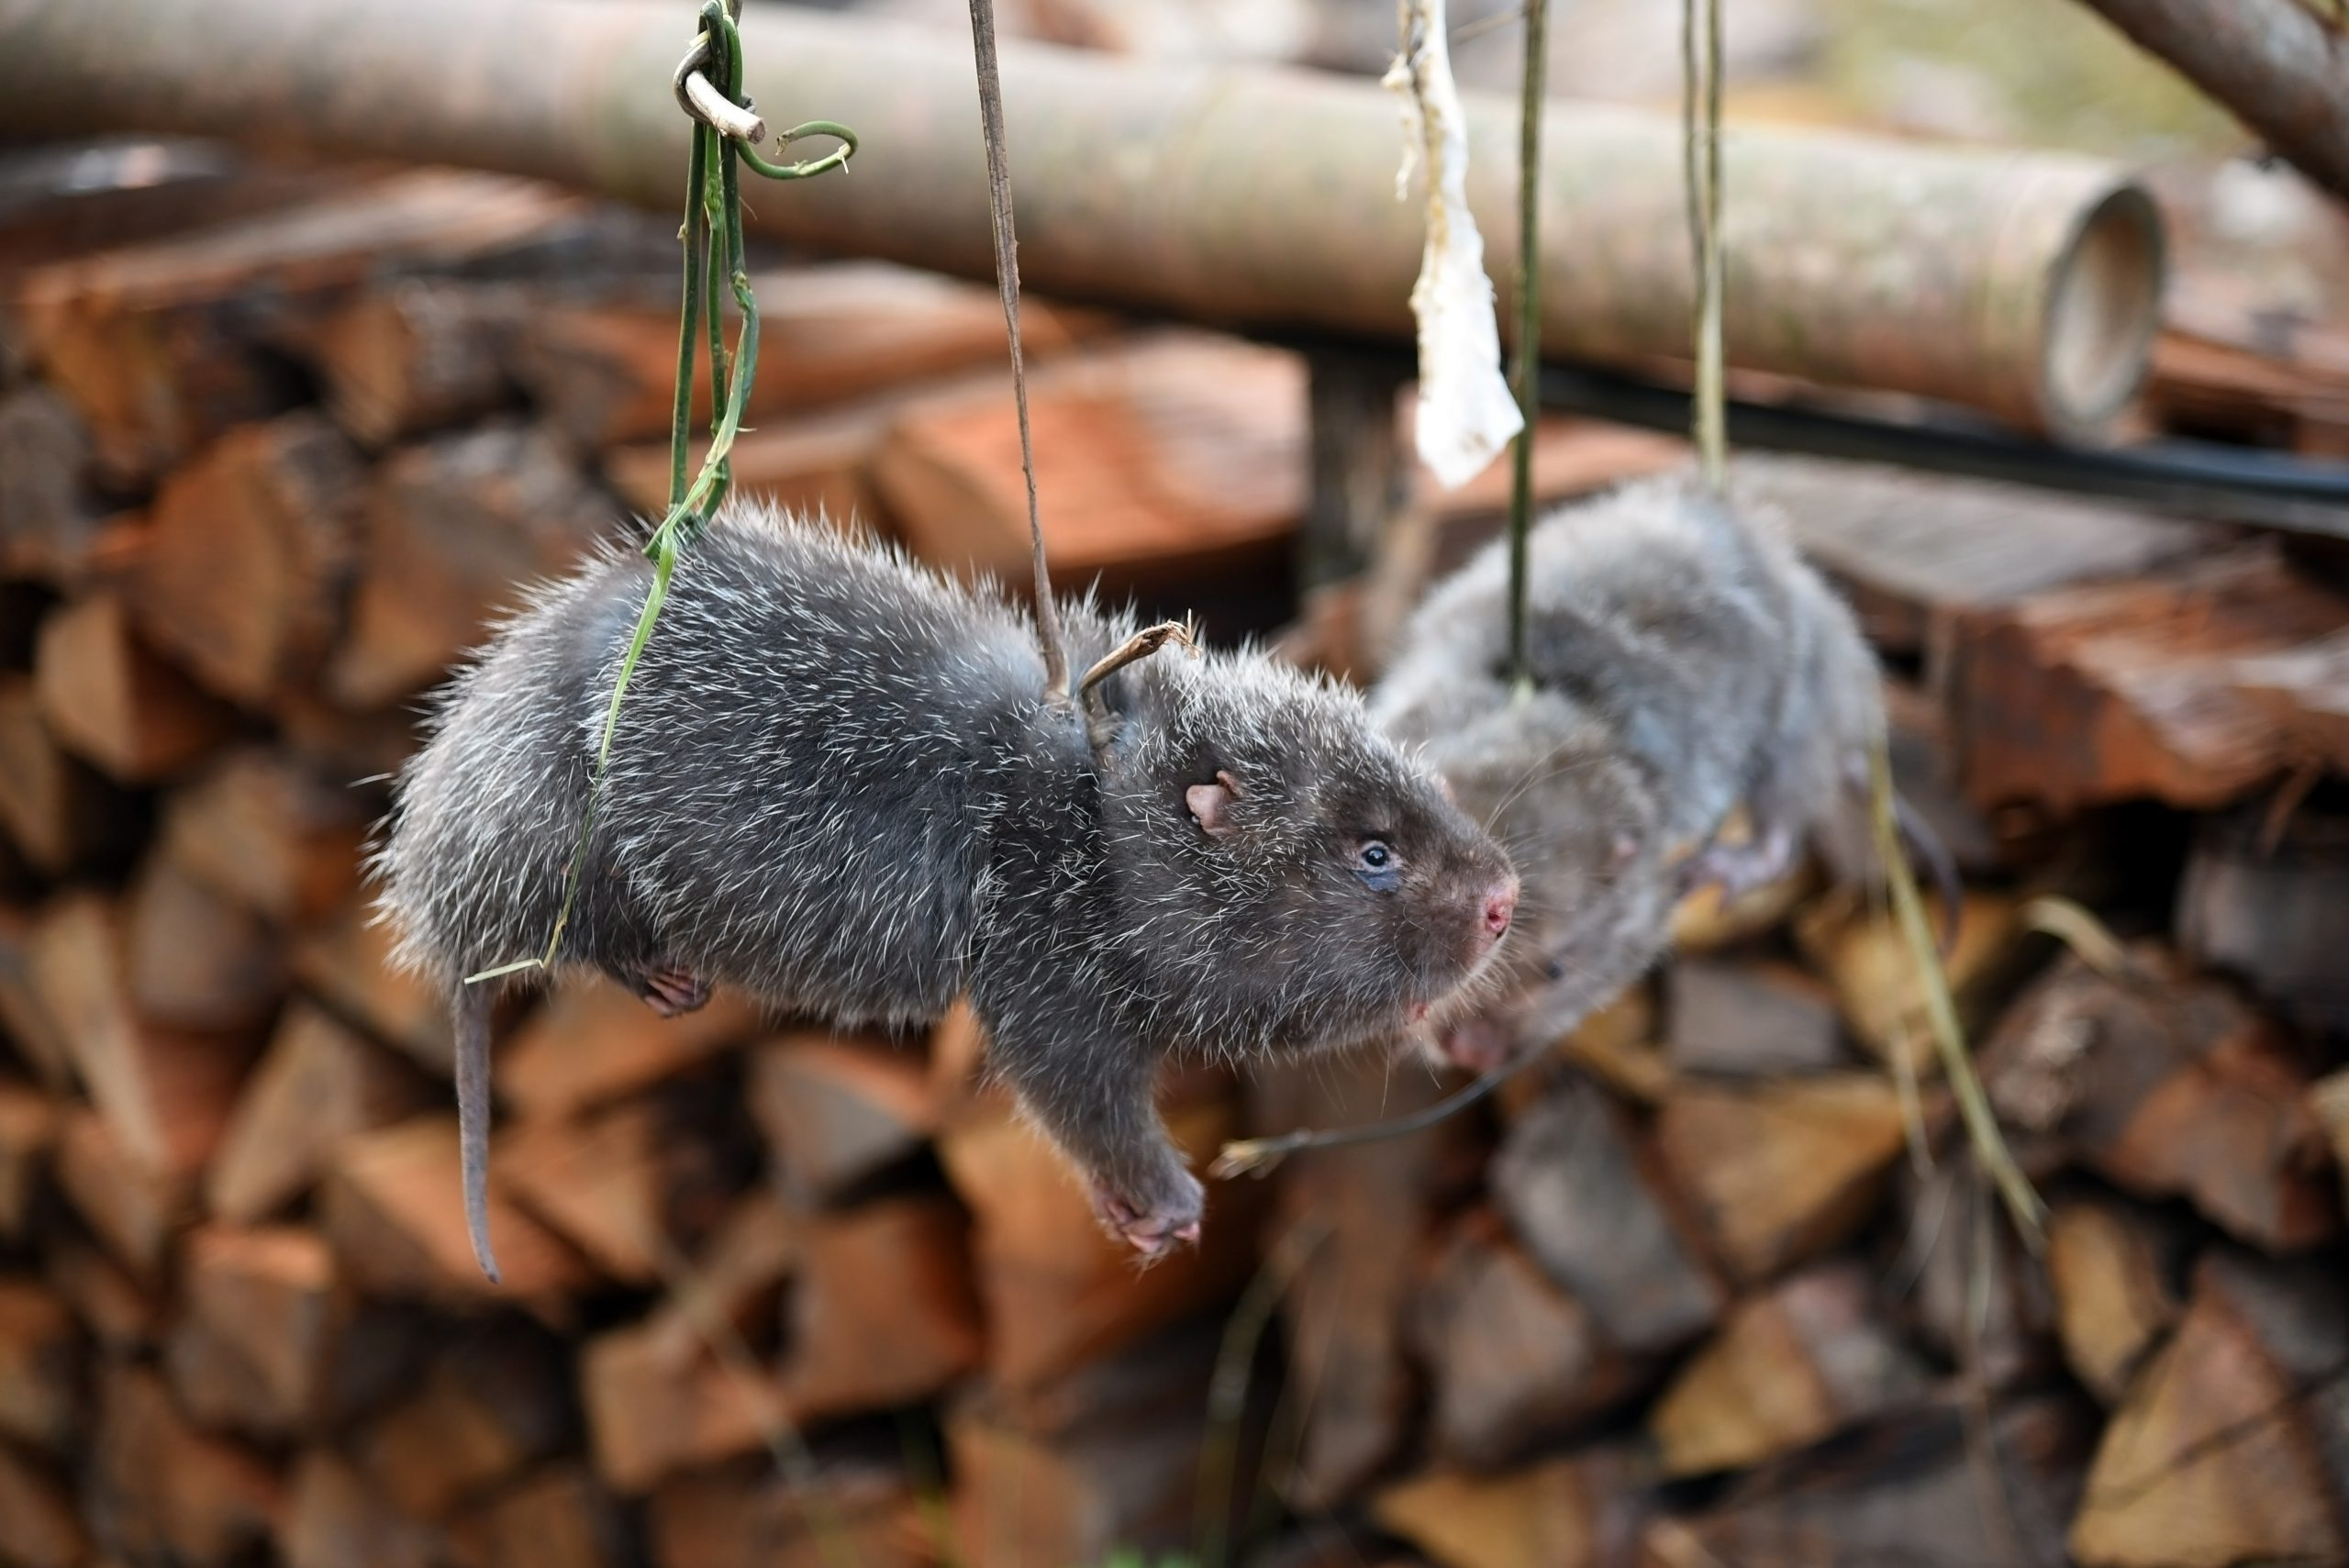 Petition: Lead Epidemiologist Says Coronavirus May be Linked to Breeding of Huge Rats in China Consumed to Detoxify the Body